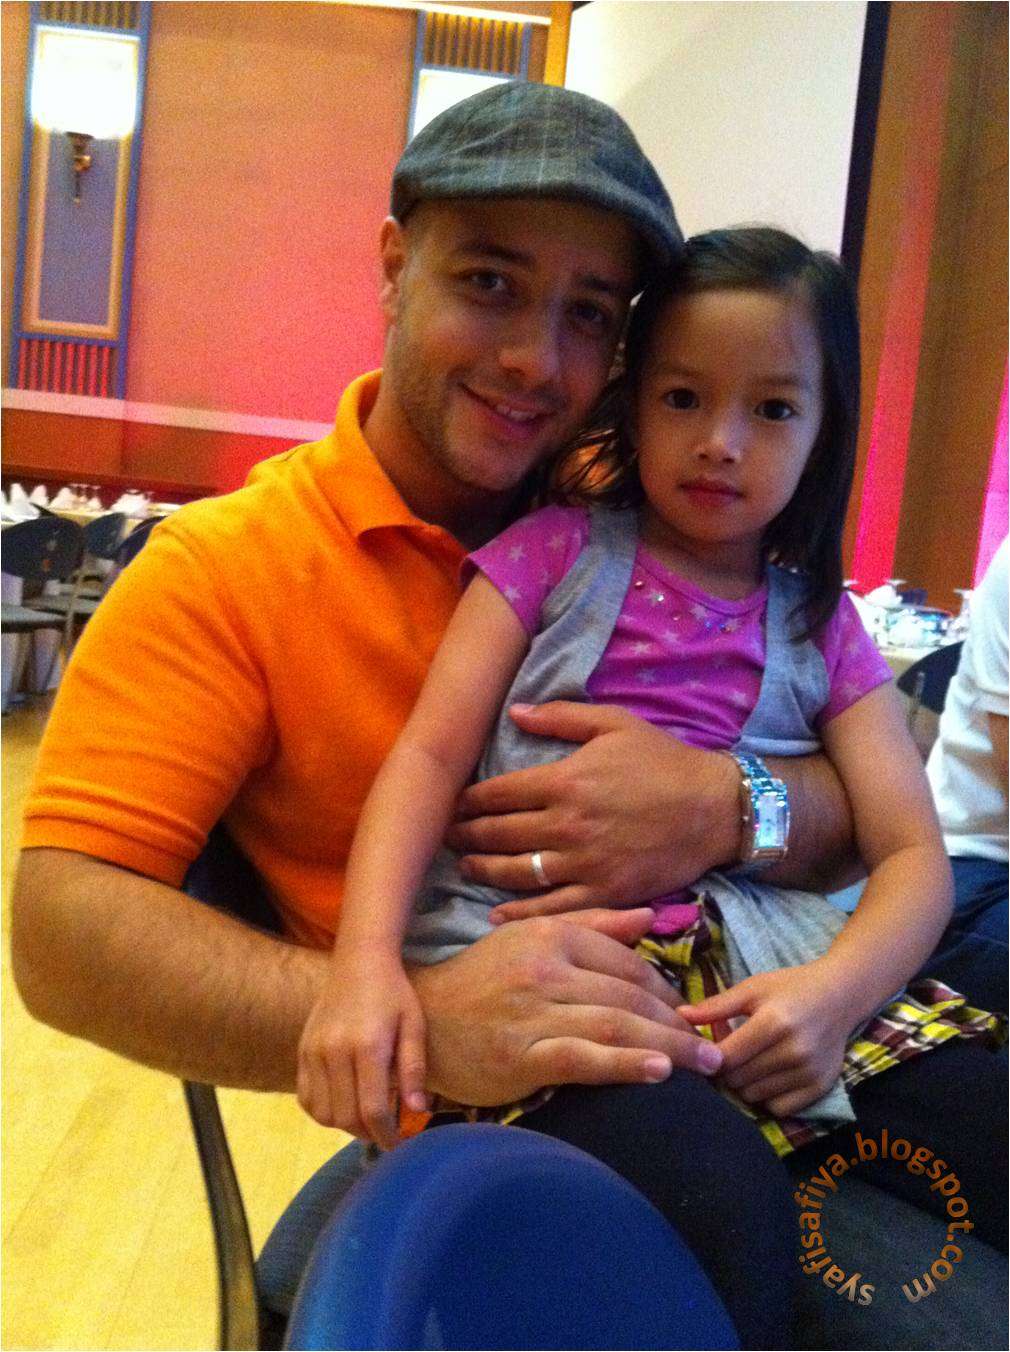 Maher Zain Wife Aisha http://syafisafiya.blogspot.com/2011/07/too-good-to-be-true.html